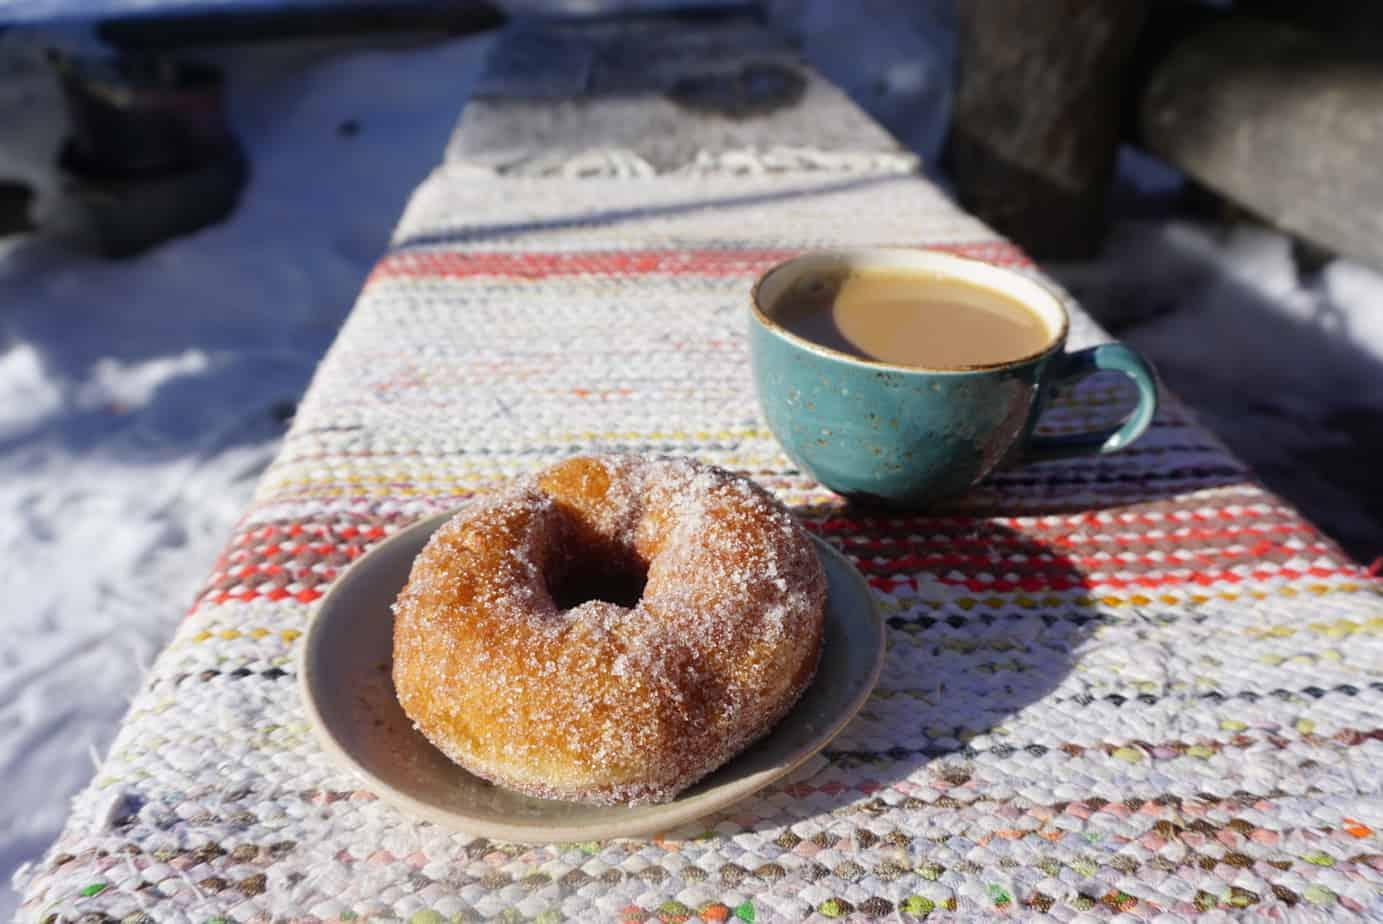 Yllas Ski resort's wilderness cafe Navettagalleria has amazing fresh donuts.